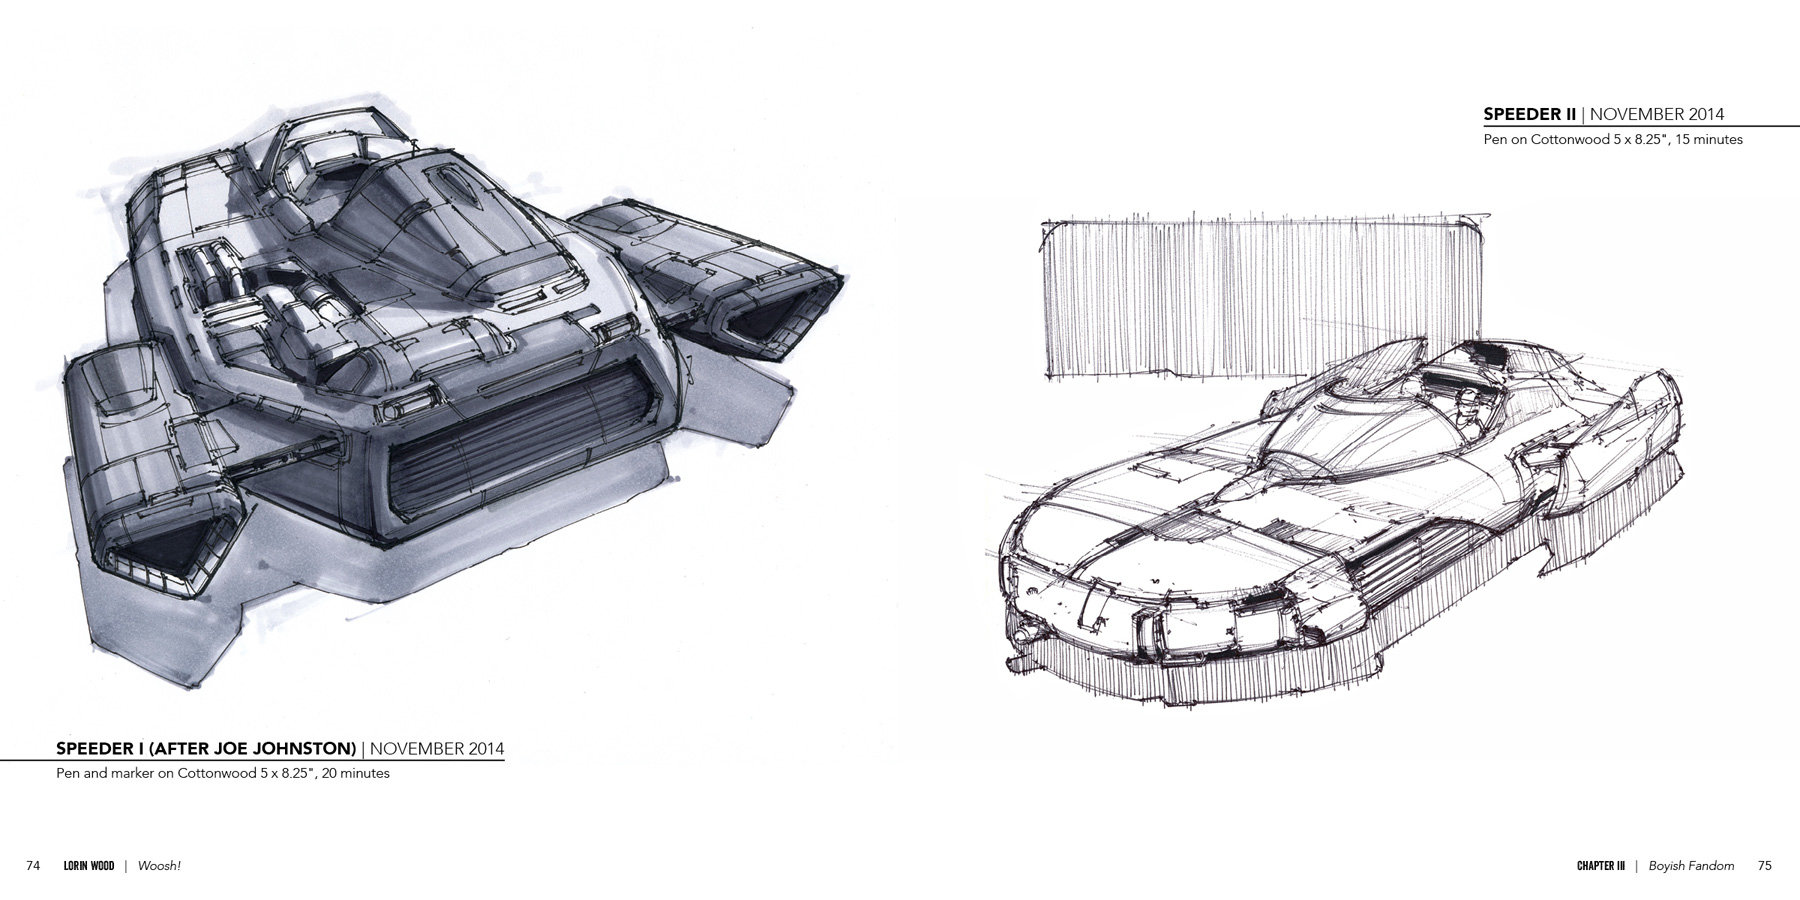 Lorin wood woosh spaceship sketches from the couch 09